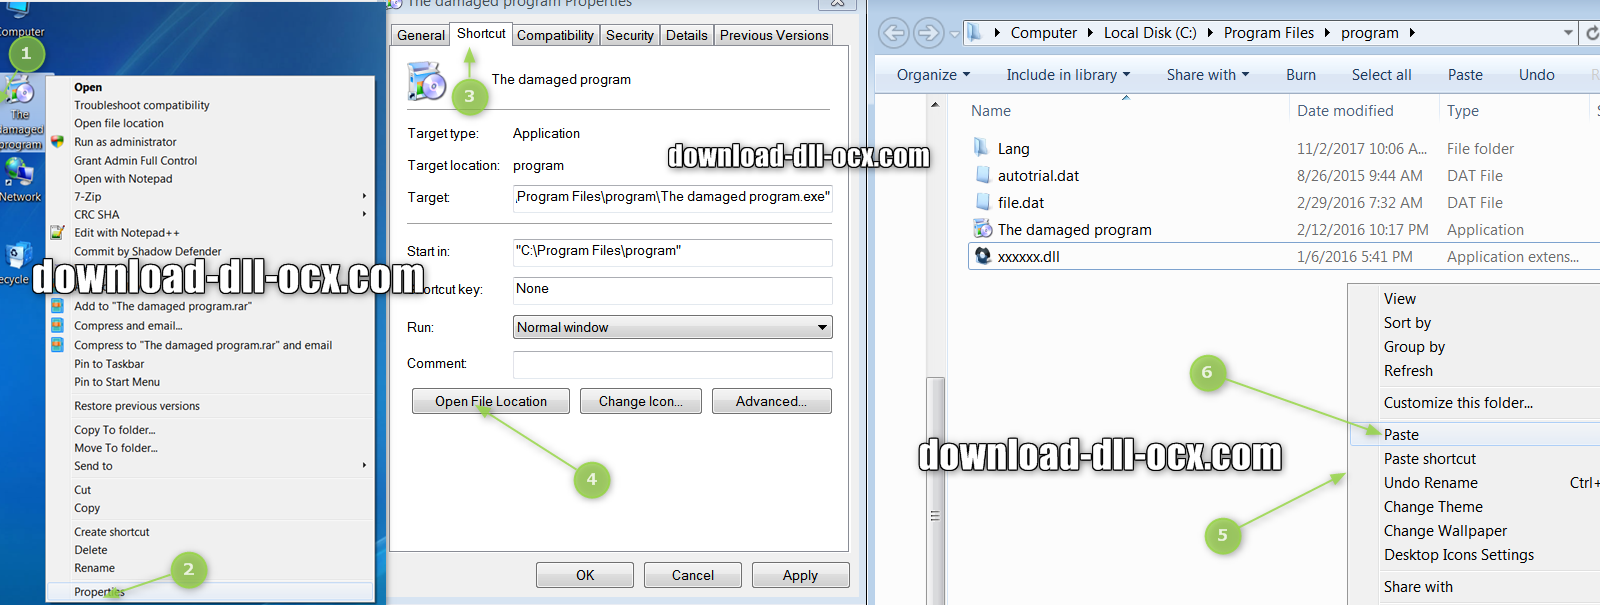 how to install ToonboomStudioImportPlugin.dll file? for fix missing